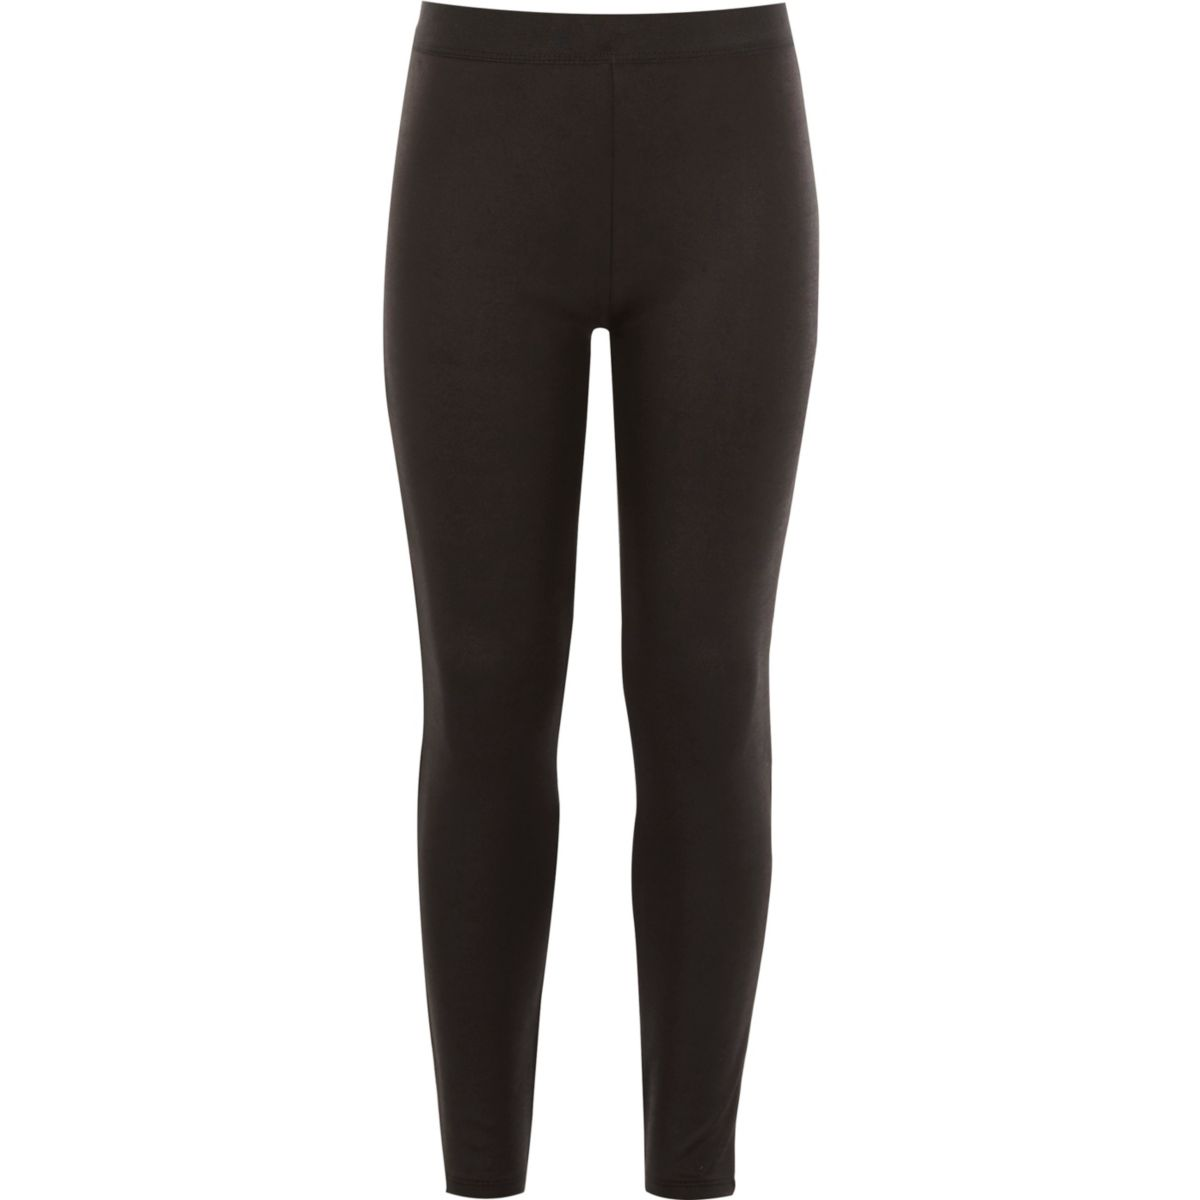 Girls black wet look leggings